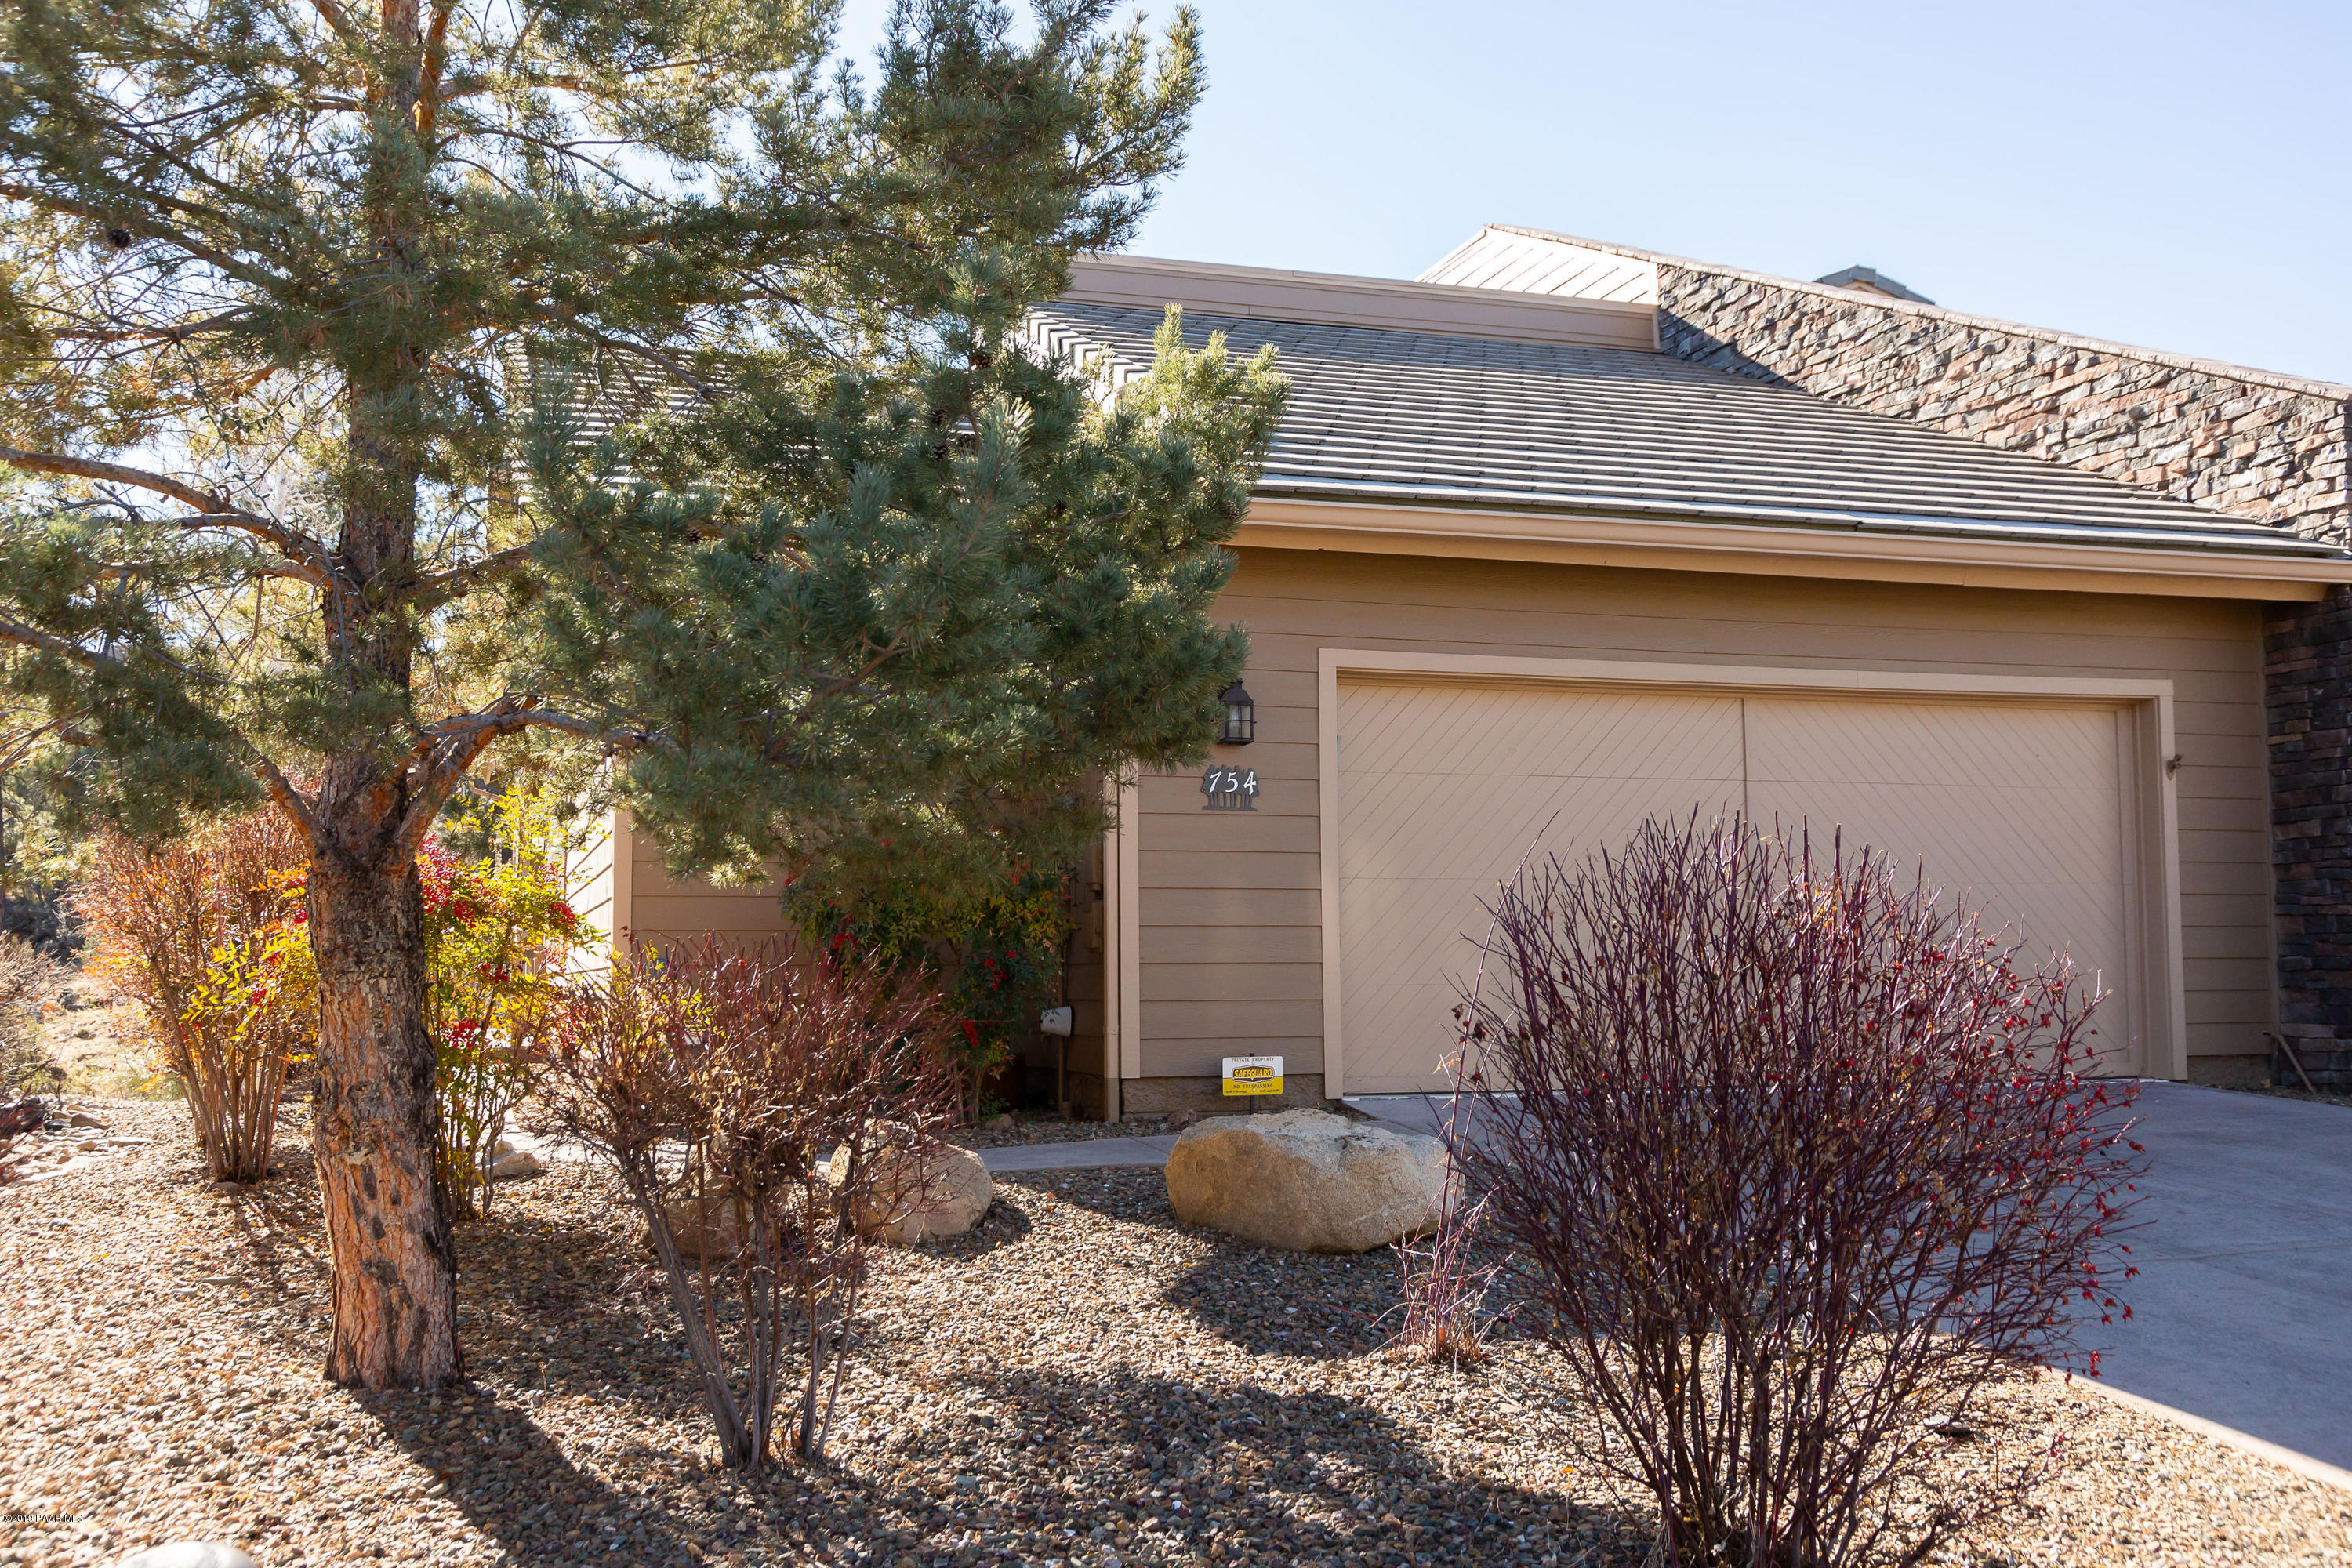 754  Babbling Brk, one of homes for sale in Prescott